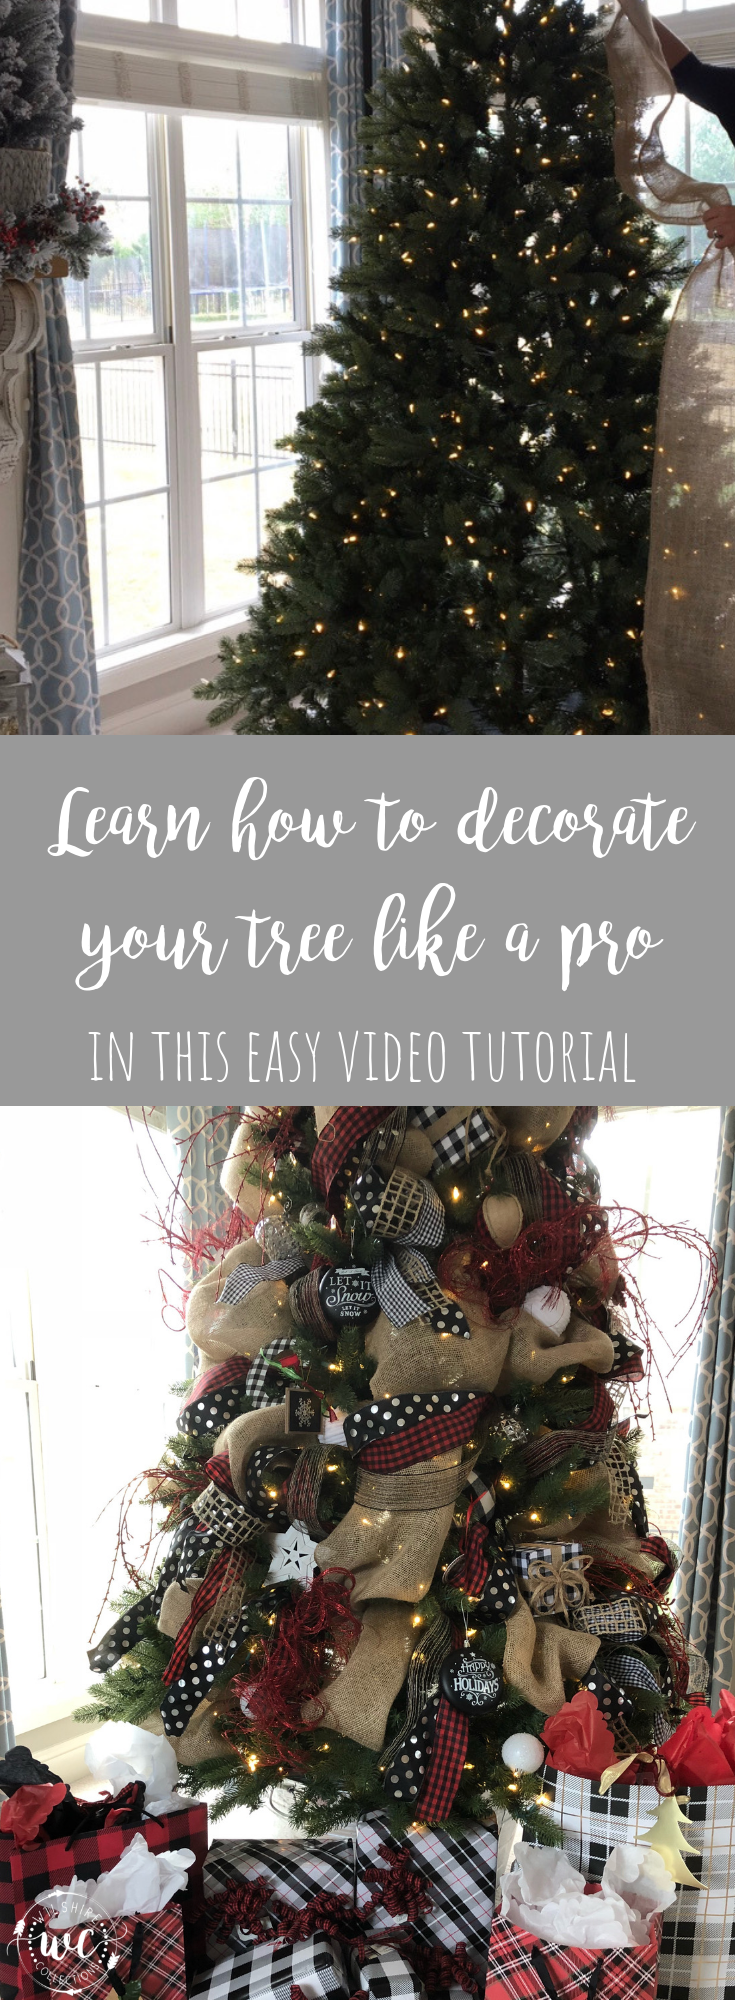 How To Decorate Your Christmas Tree With Ribbon Like A Pro Video Tutorial Wilshire Collections Ribbon On Christmas Tree Outdoor Christmas Decorations Christmas Tree Decorations